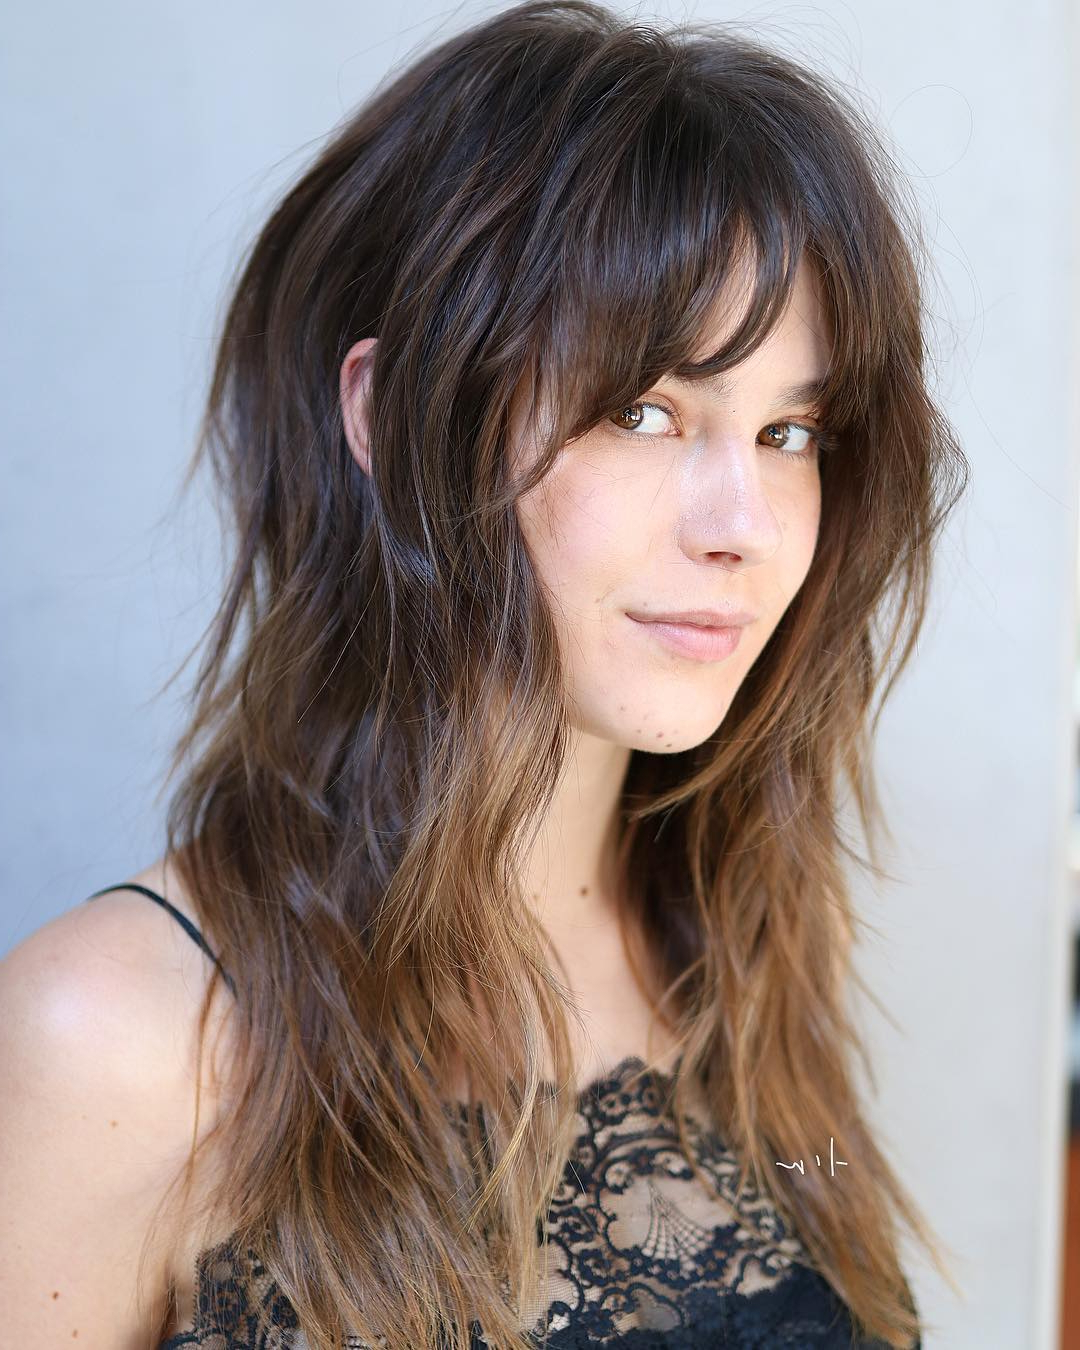 40 Modern Shag Haircuts For Women To Make A Splash In Waves Of Color Shag Haircuts (View 5 of 20)